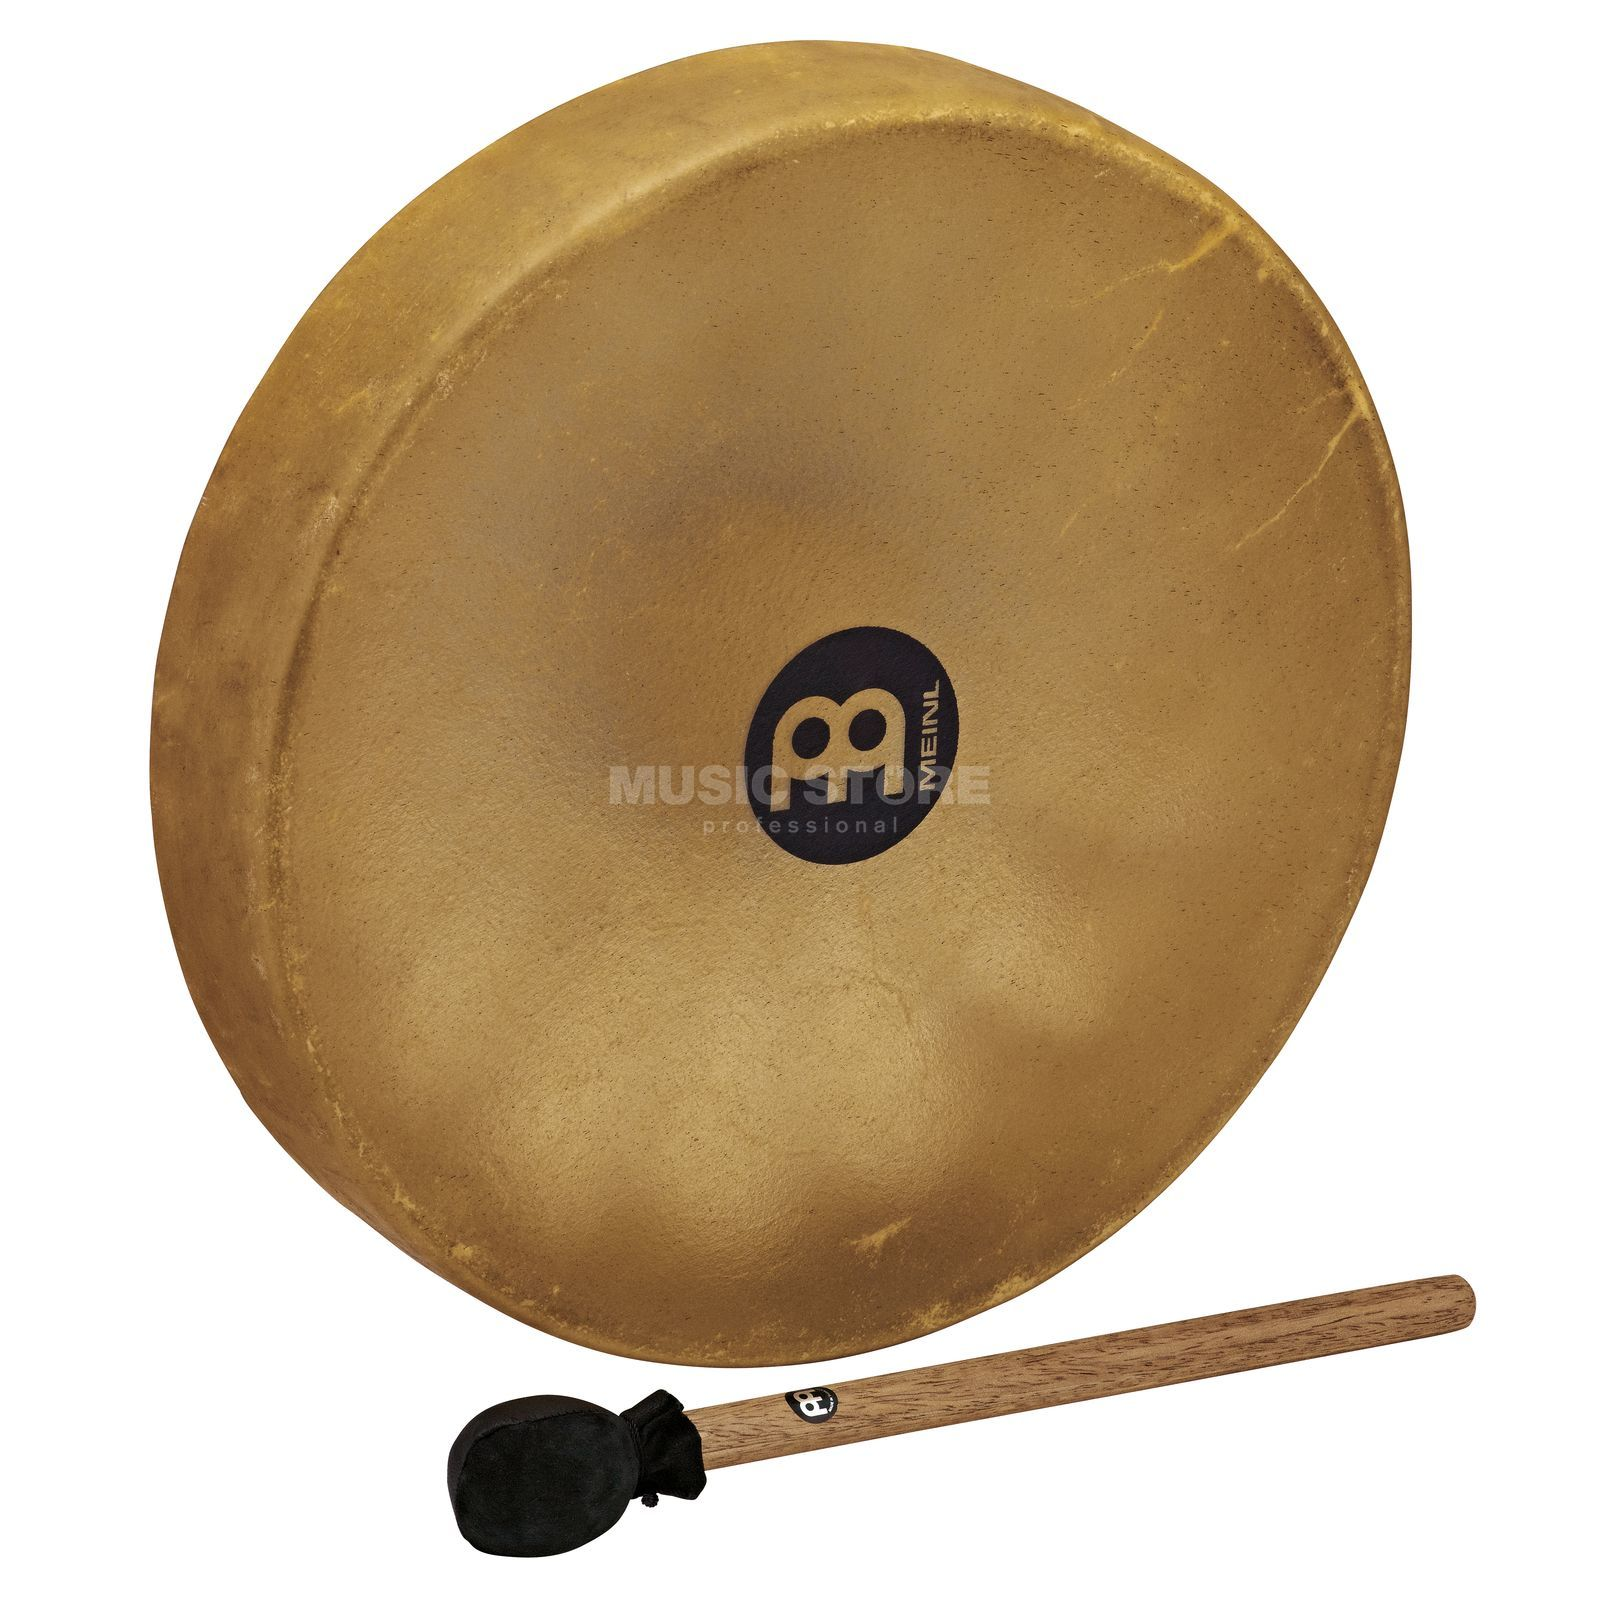 "Meinl Frame Drum HOD15, 15"", Hand Selected Buffalo Head Immagine prodotto"